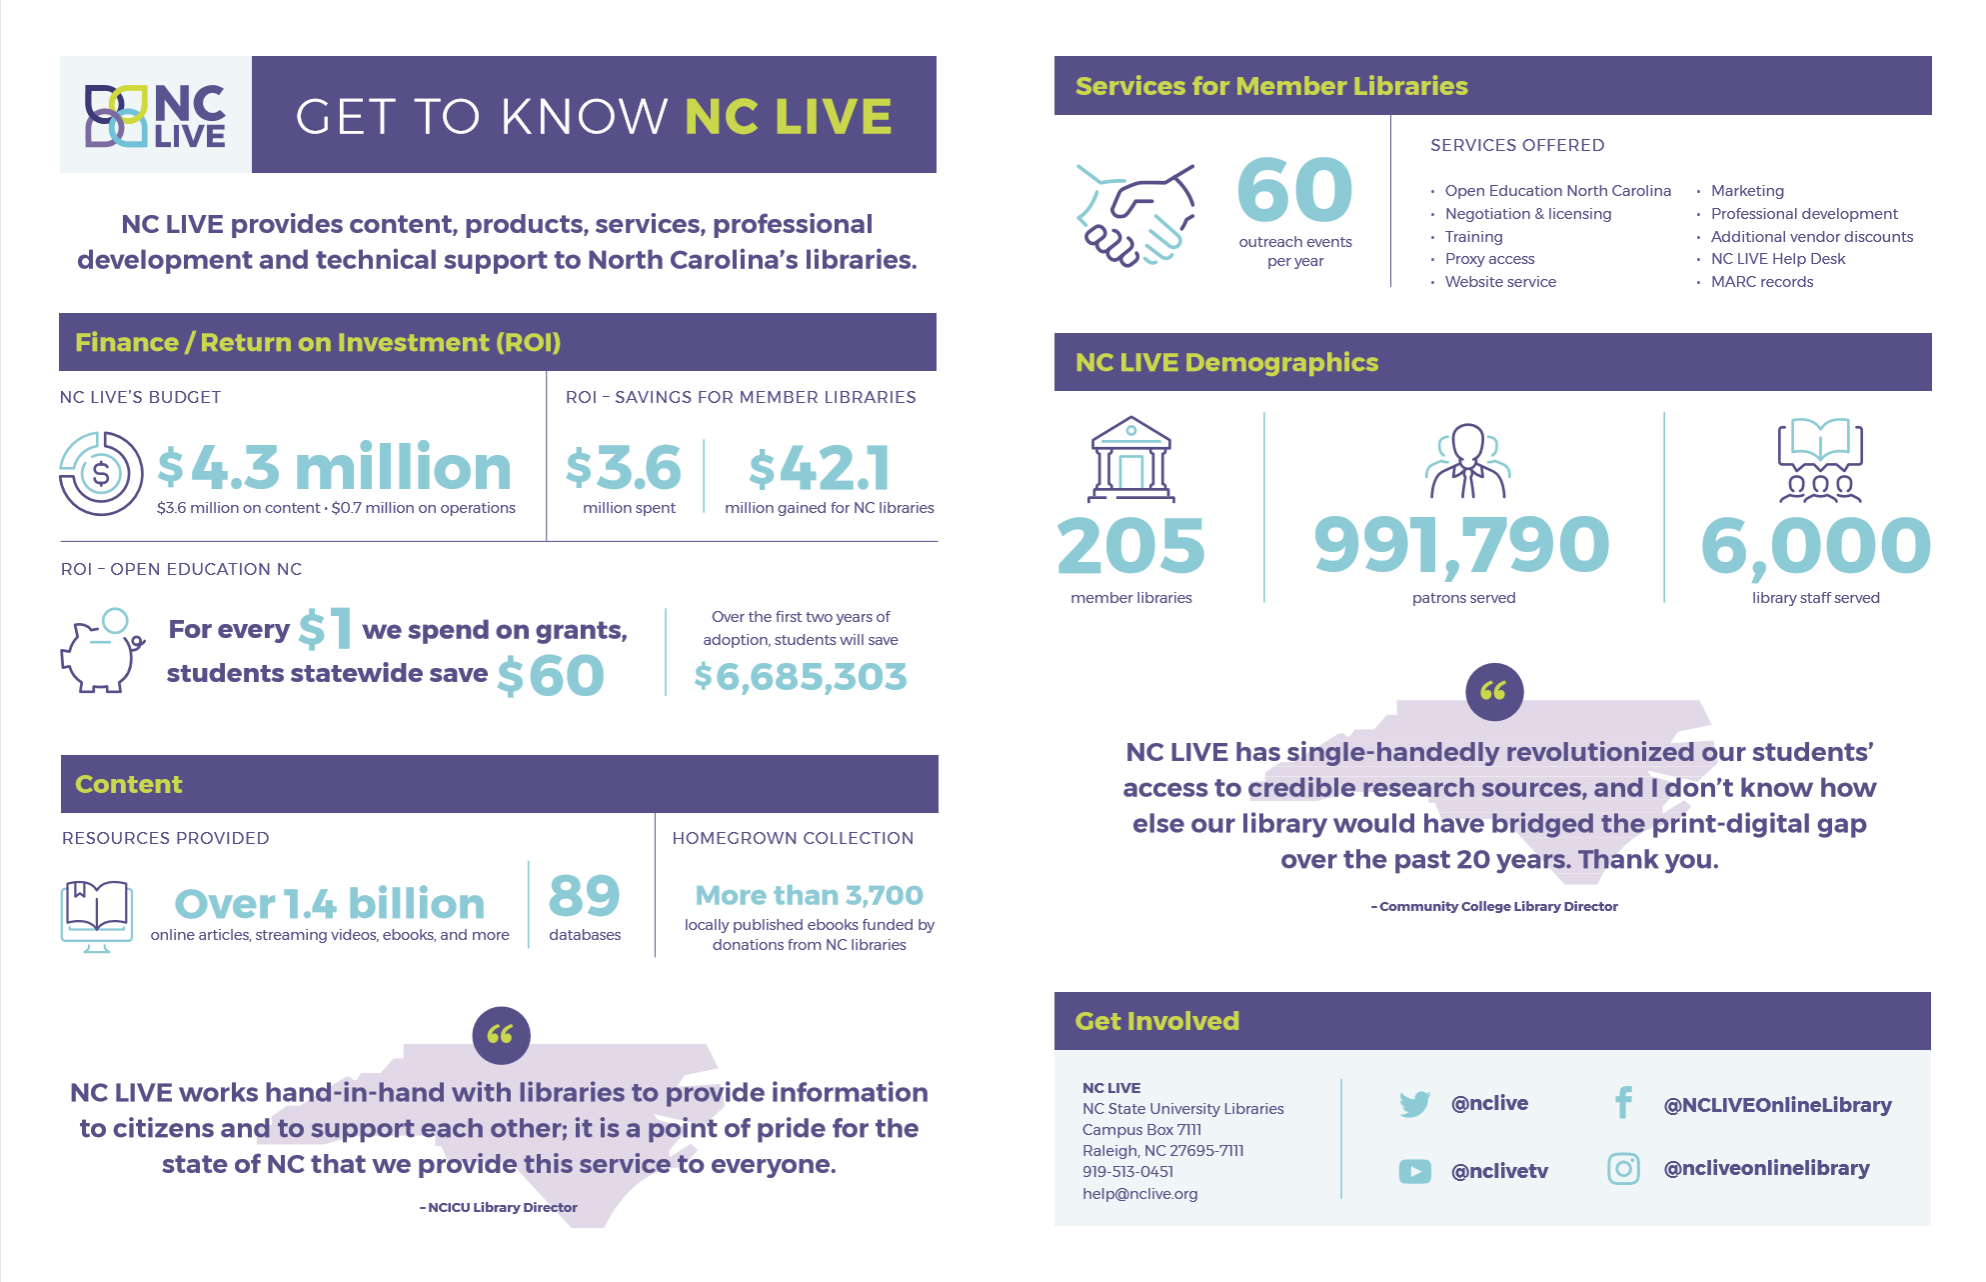 Get to Know NC LIVE 2019